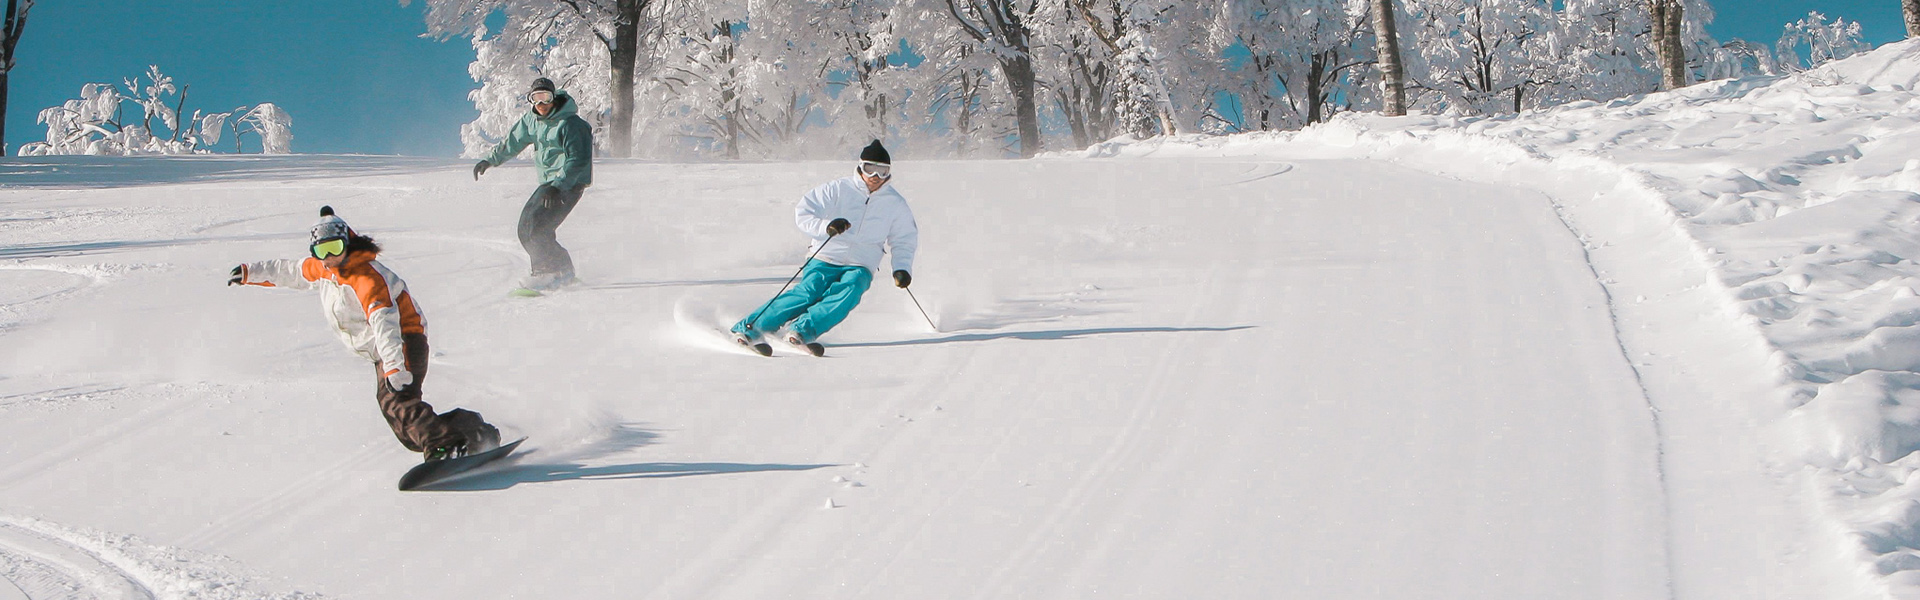 skiers and snowboarder on a slope First Tours